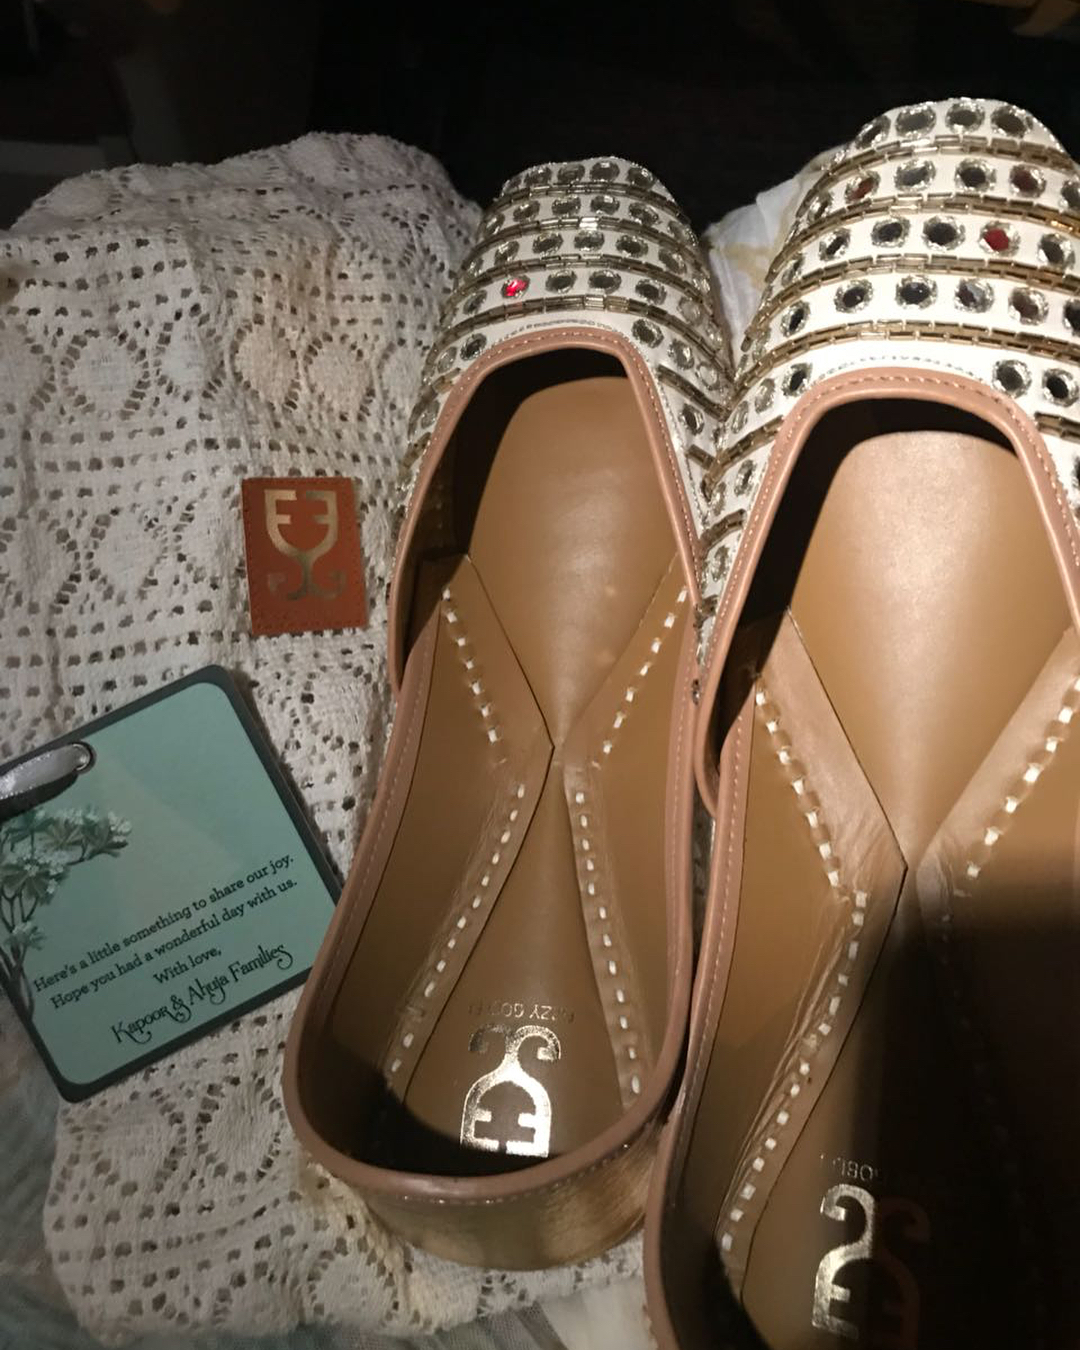 Sonam Kapoor's wedding return gifts - juttis from Fizzy Goblet with a personalised message